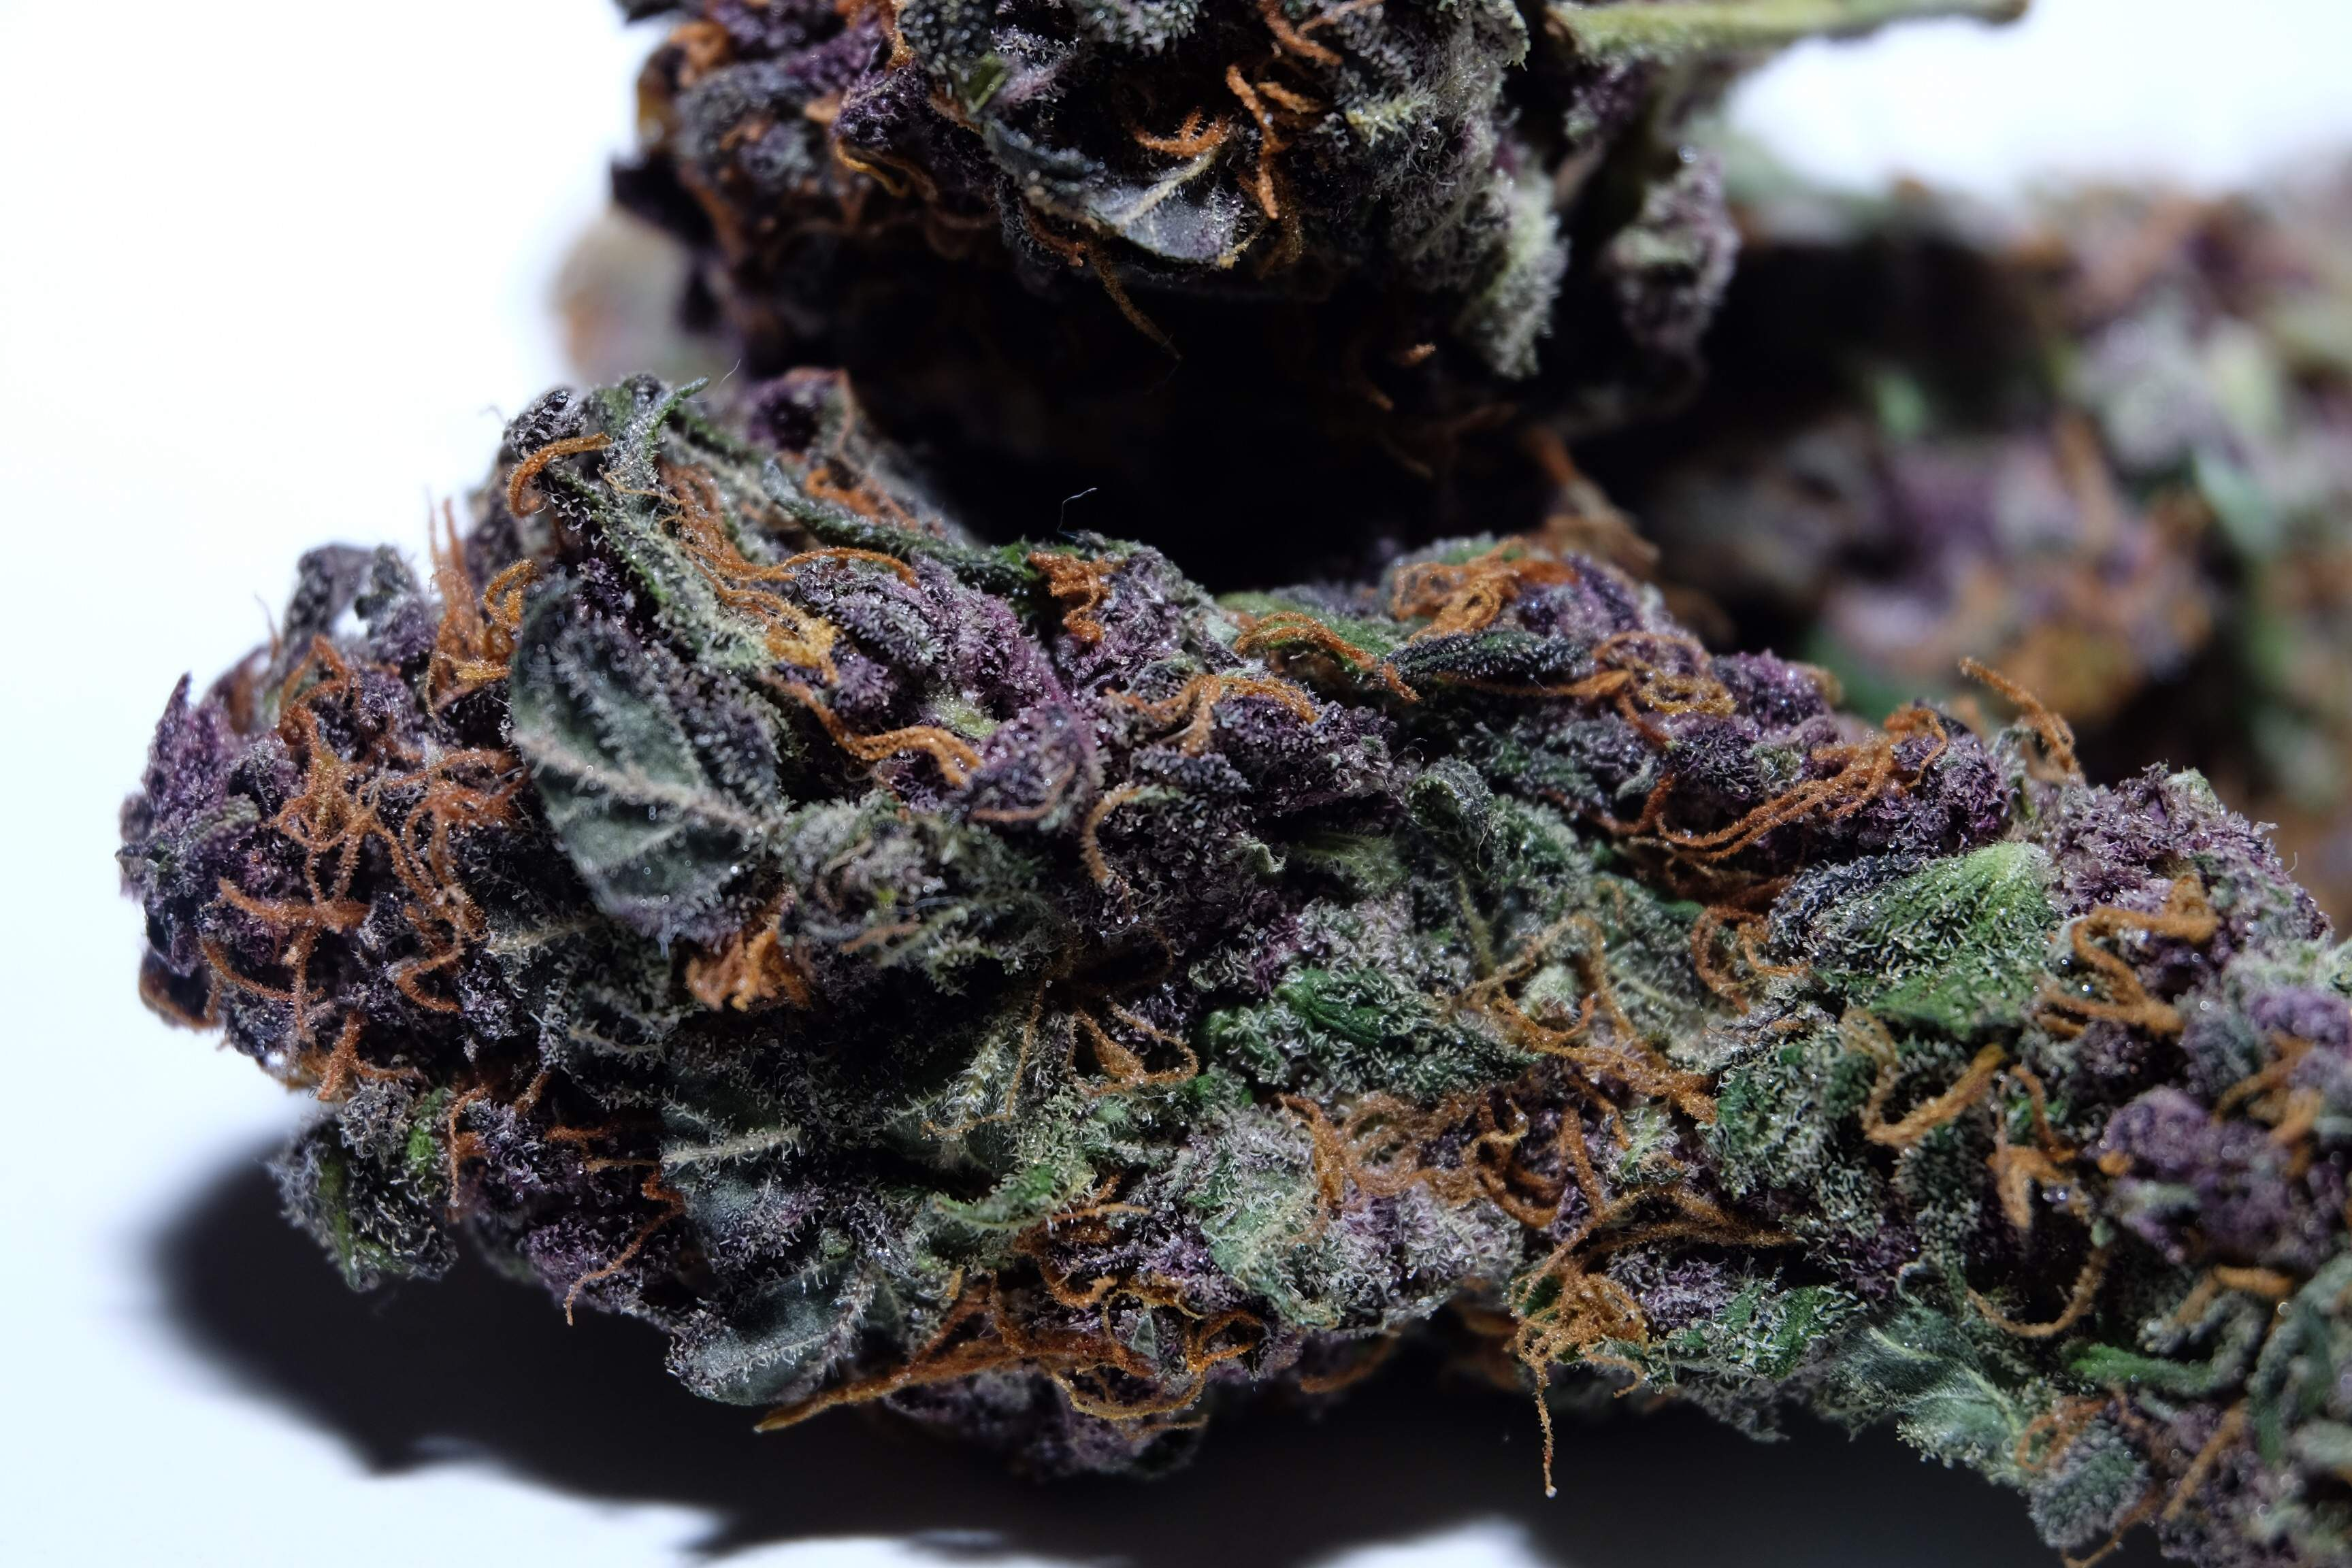 strains to stimulate your appetite